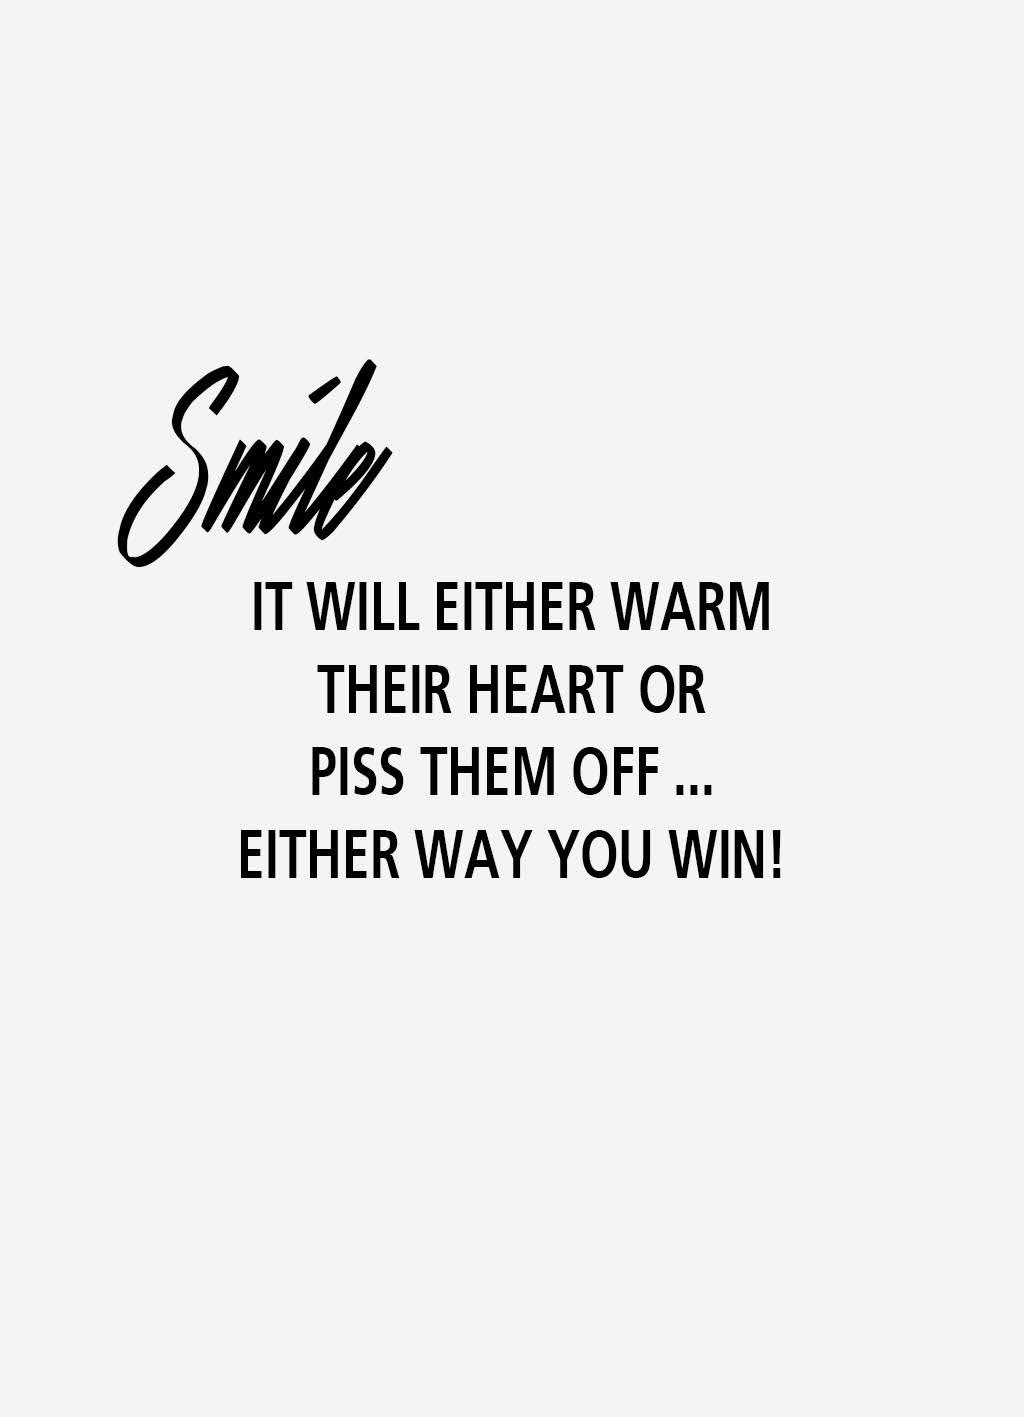 Quote of the day | Smile it will either warm their heart or piss them off … either way you win